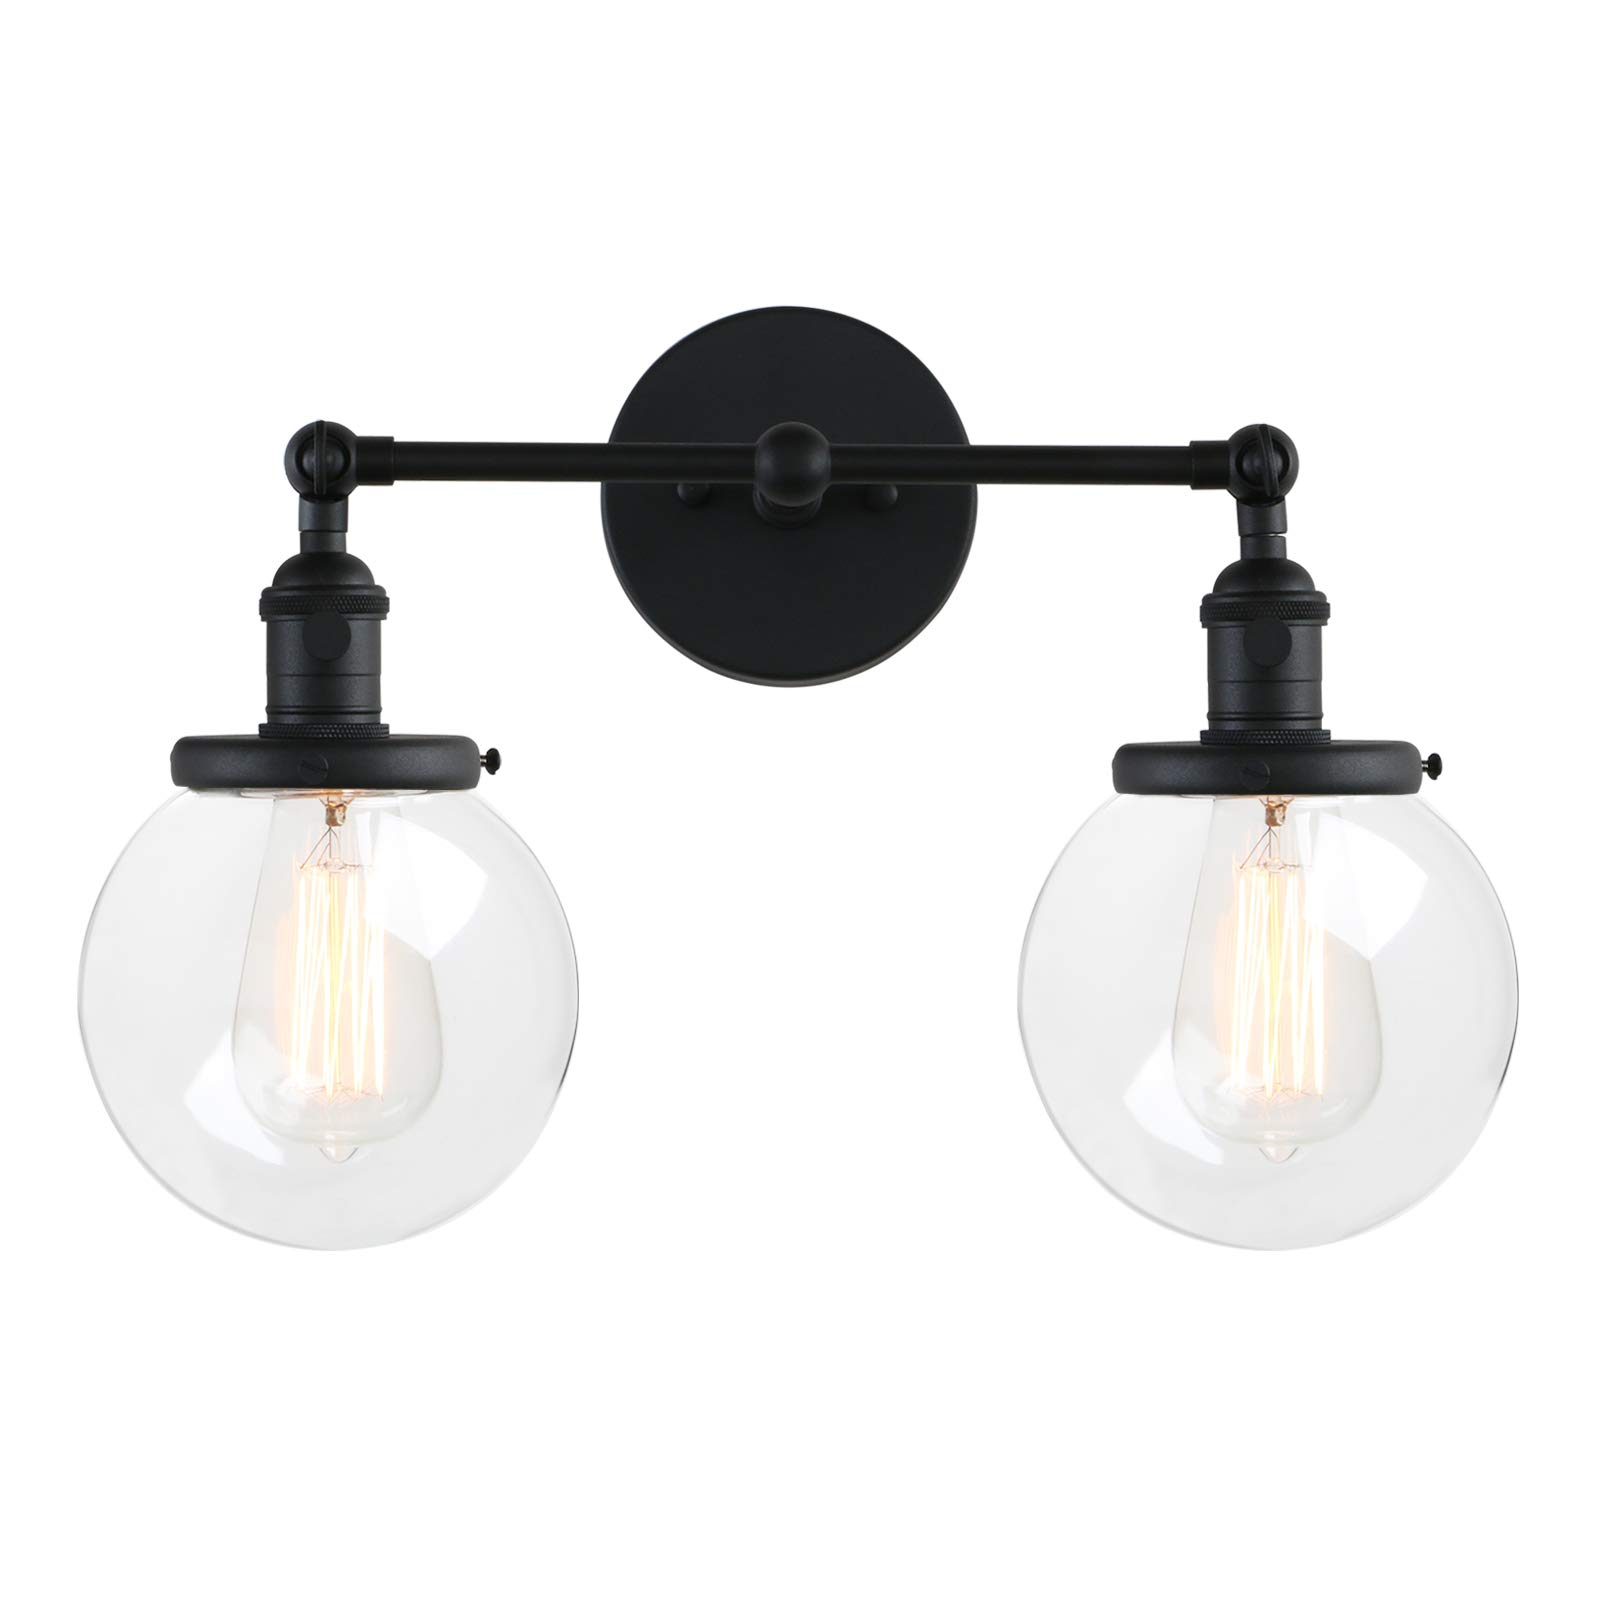 Pathson Vintage 2 Light Wall Sconce with Globe Clear Glass Shade, Black Industrial Vanity Light Fixtures for Bathroom by Pathson